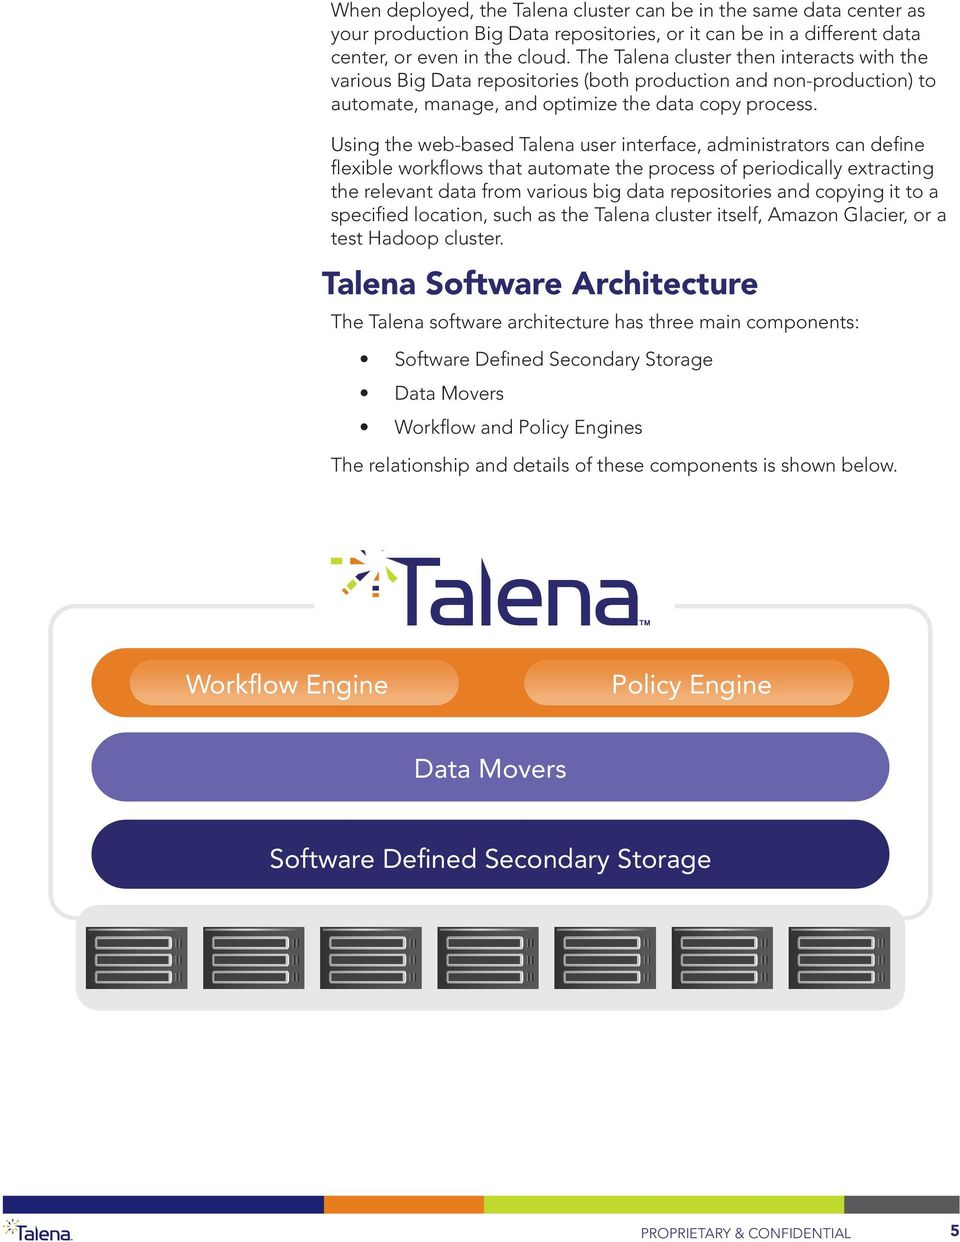 Using the web-based Talena user interface, administrators can define flexible workflows that automate the process of periodically extracting the relevant data from various big data repositories and